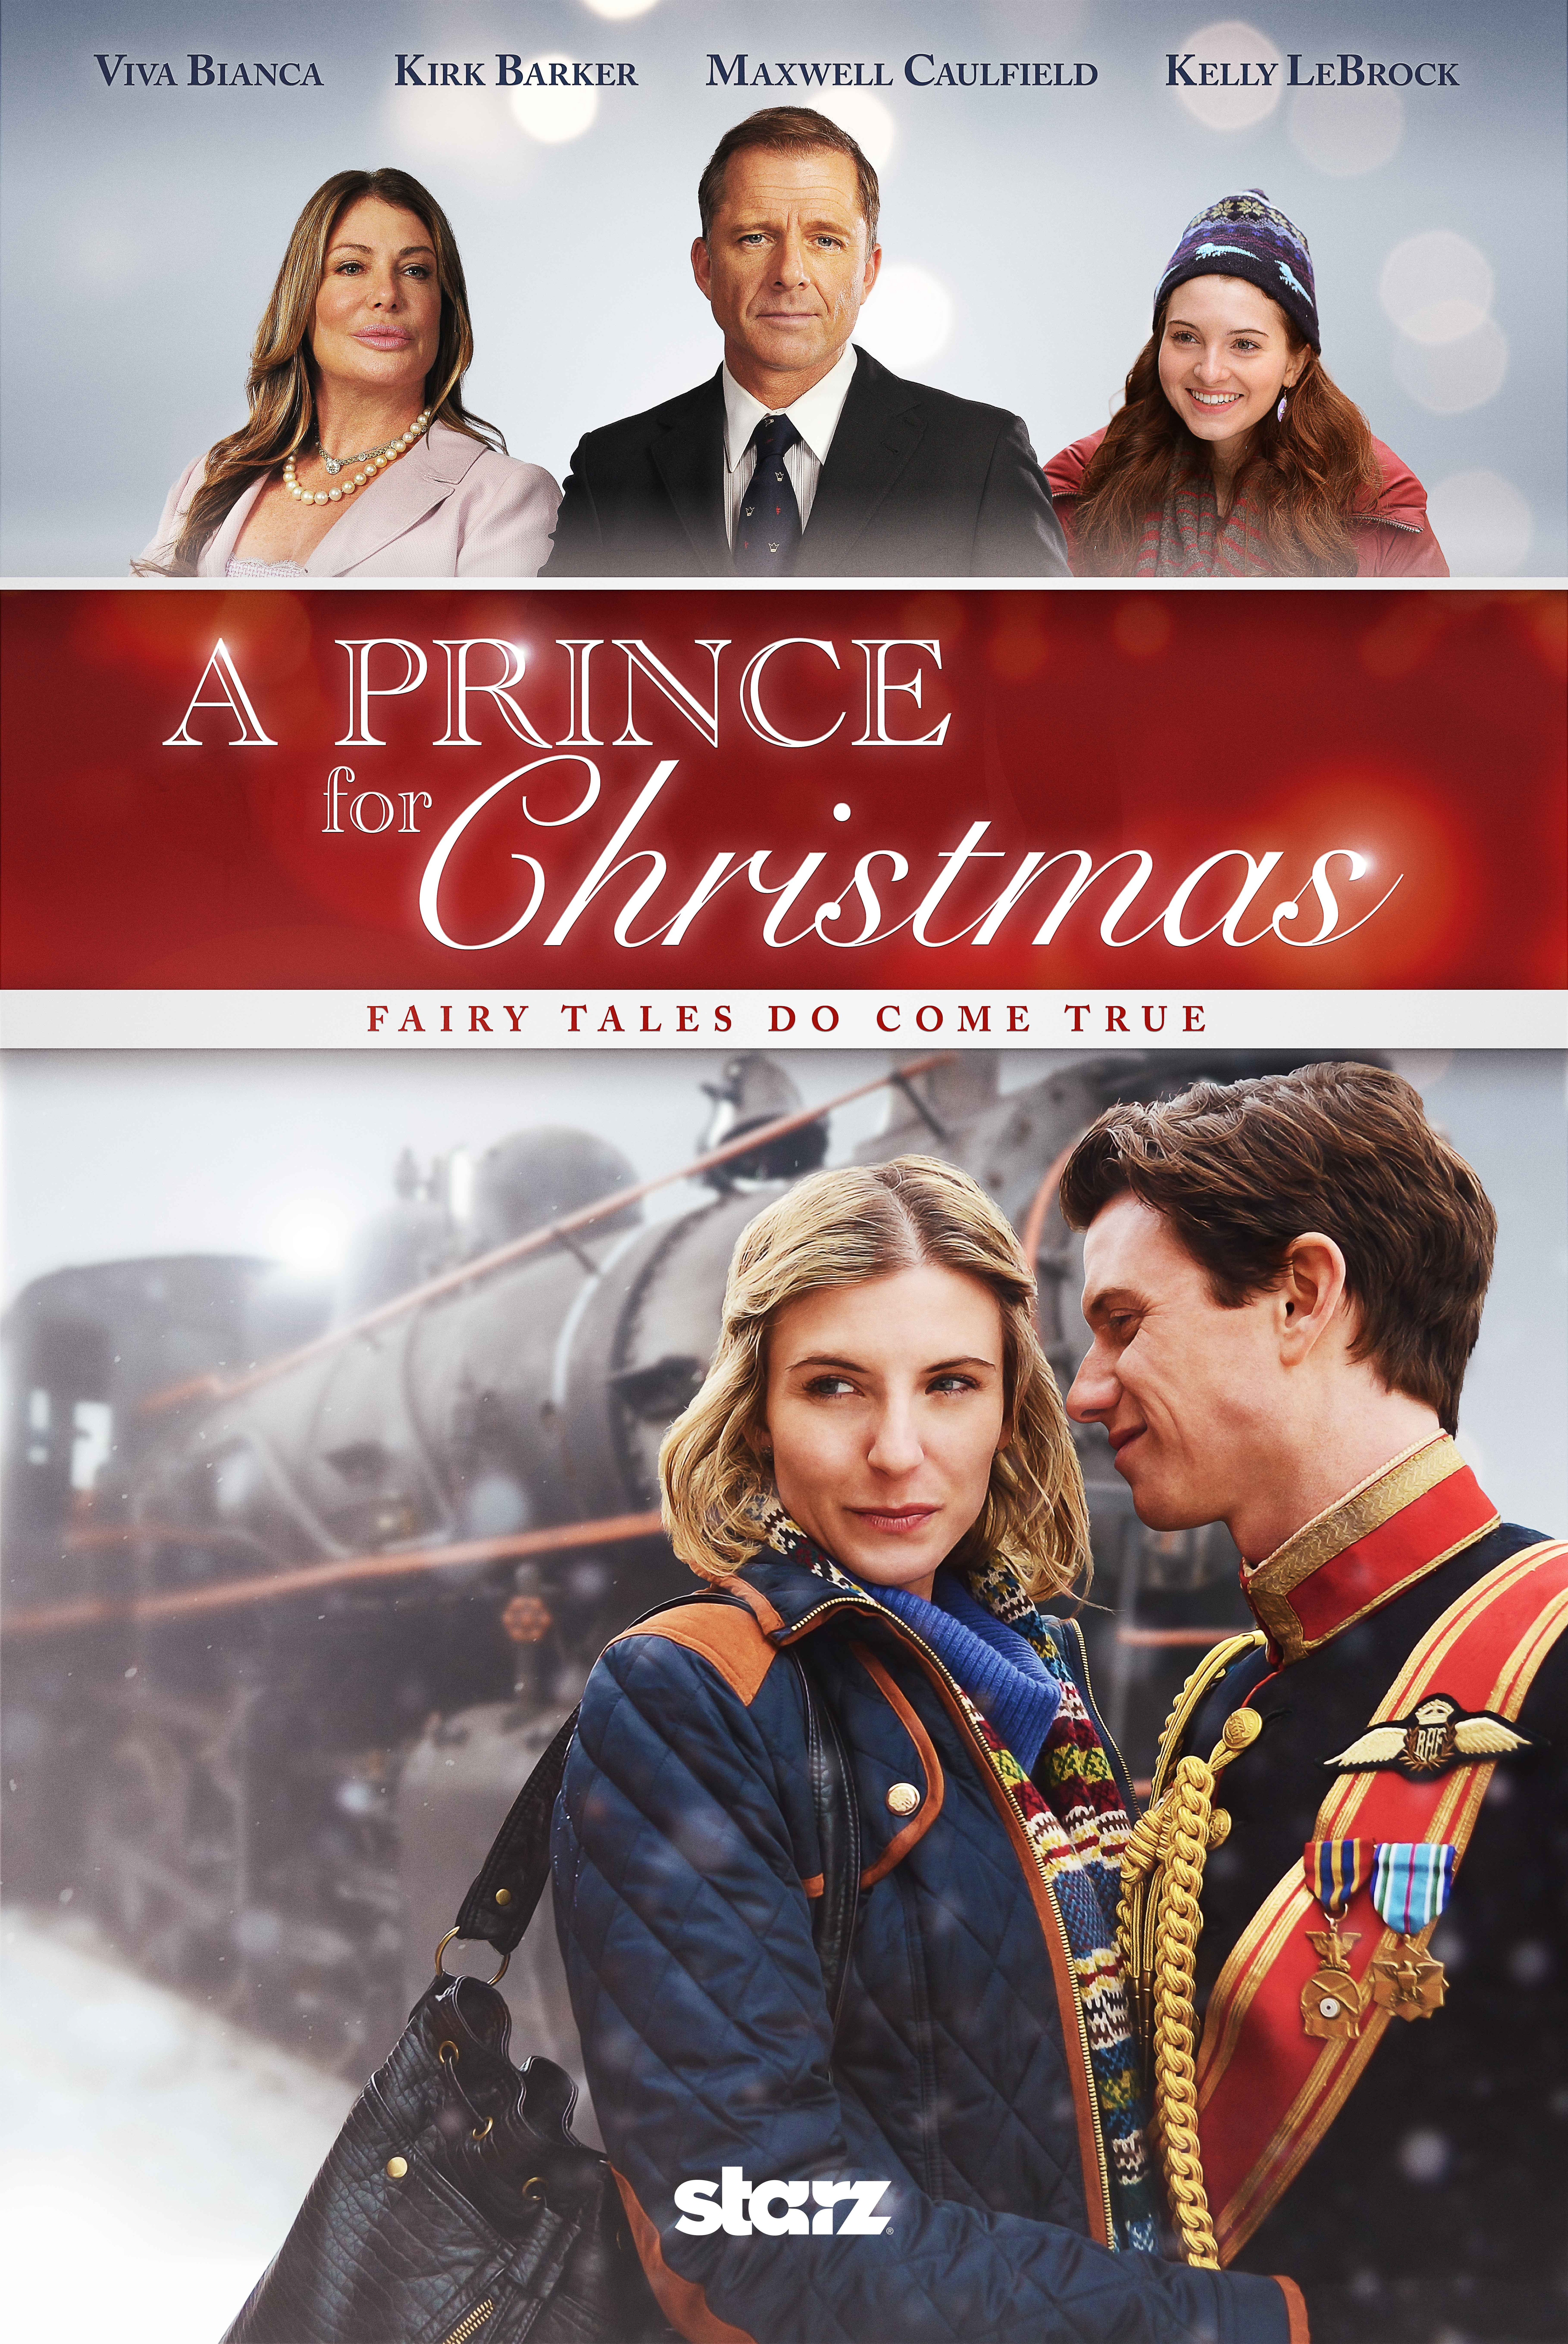 A Prince For Christmas Cast.A Prince For Christmas Tv Movie 2015 Imdb